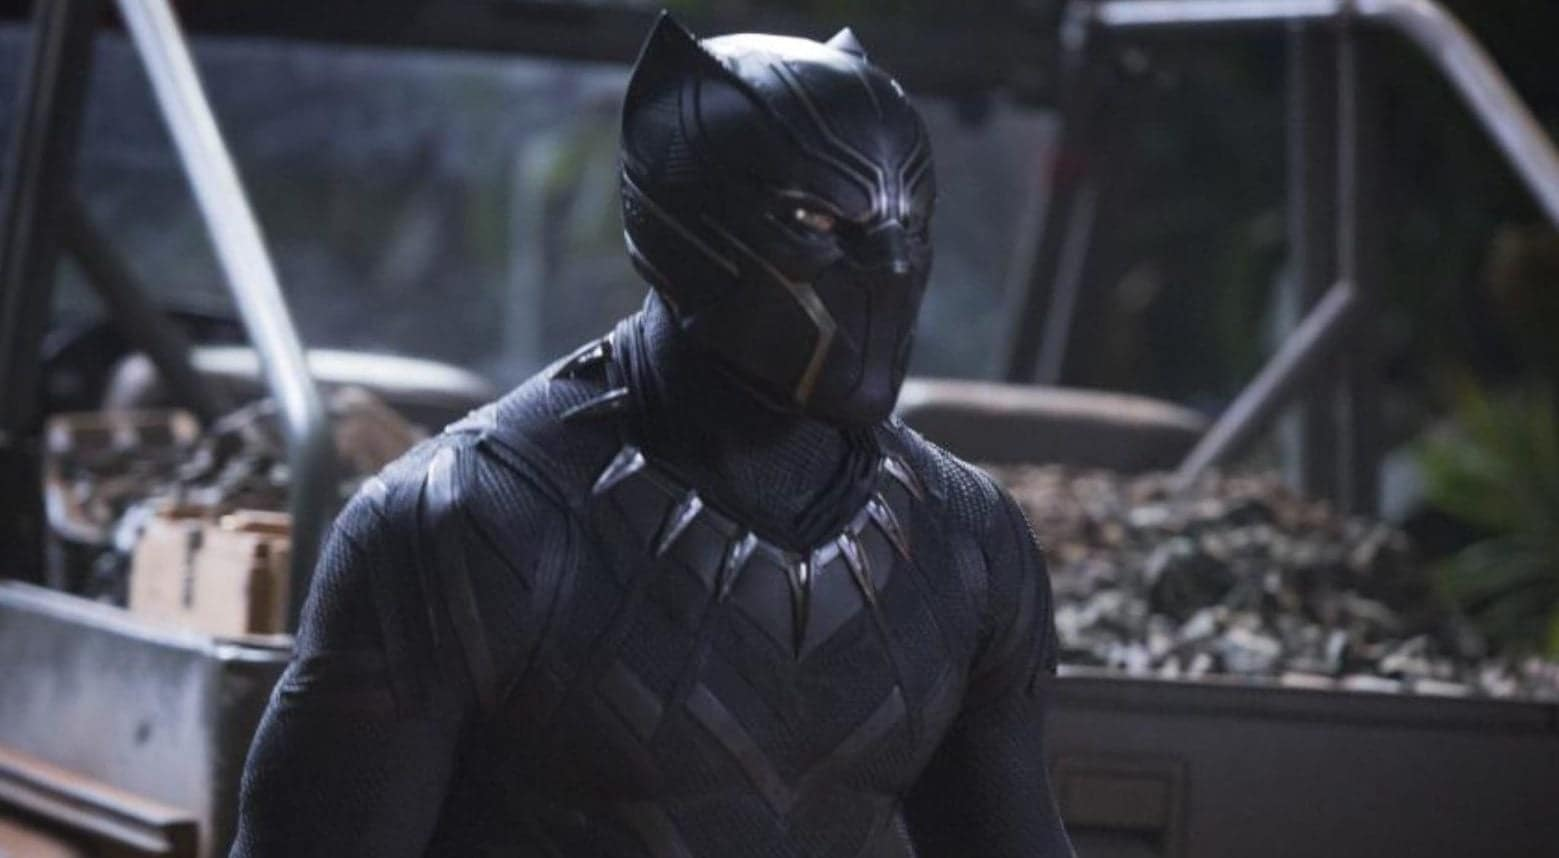 Black Panther Continues Its Worldwide Dominance